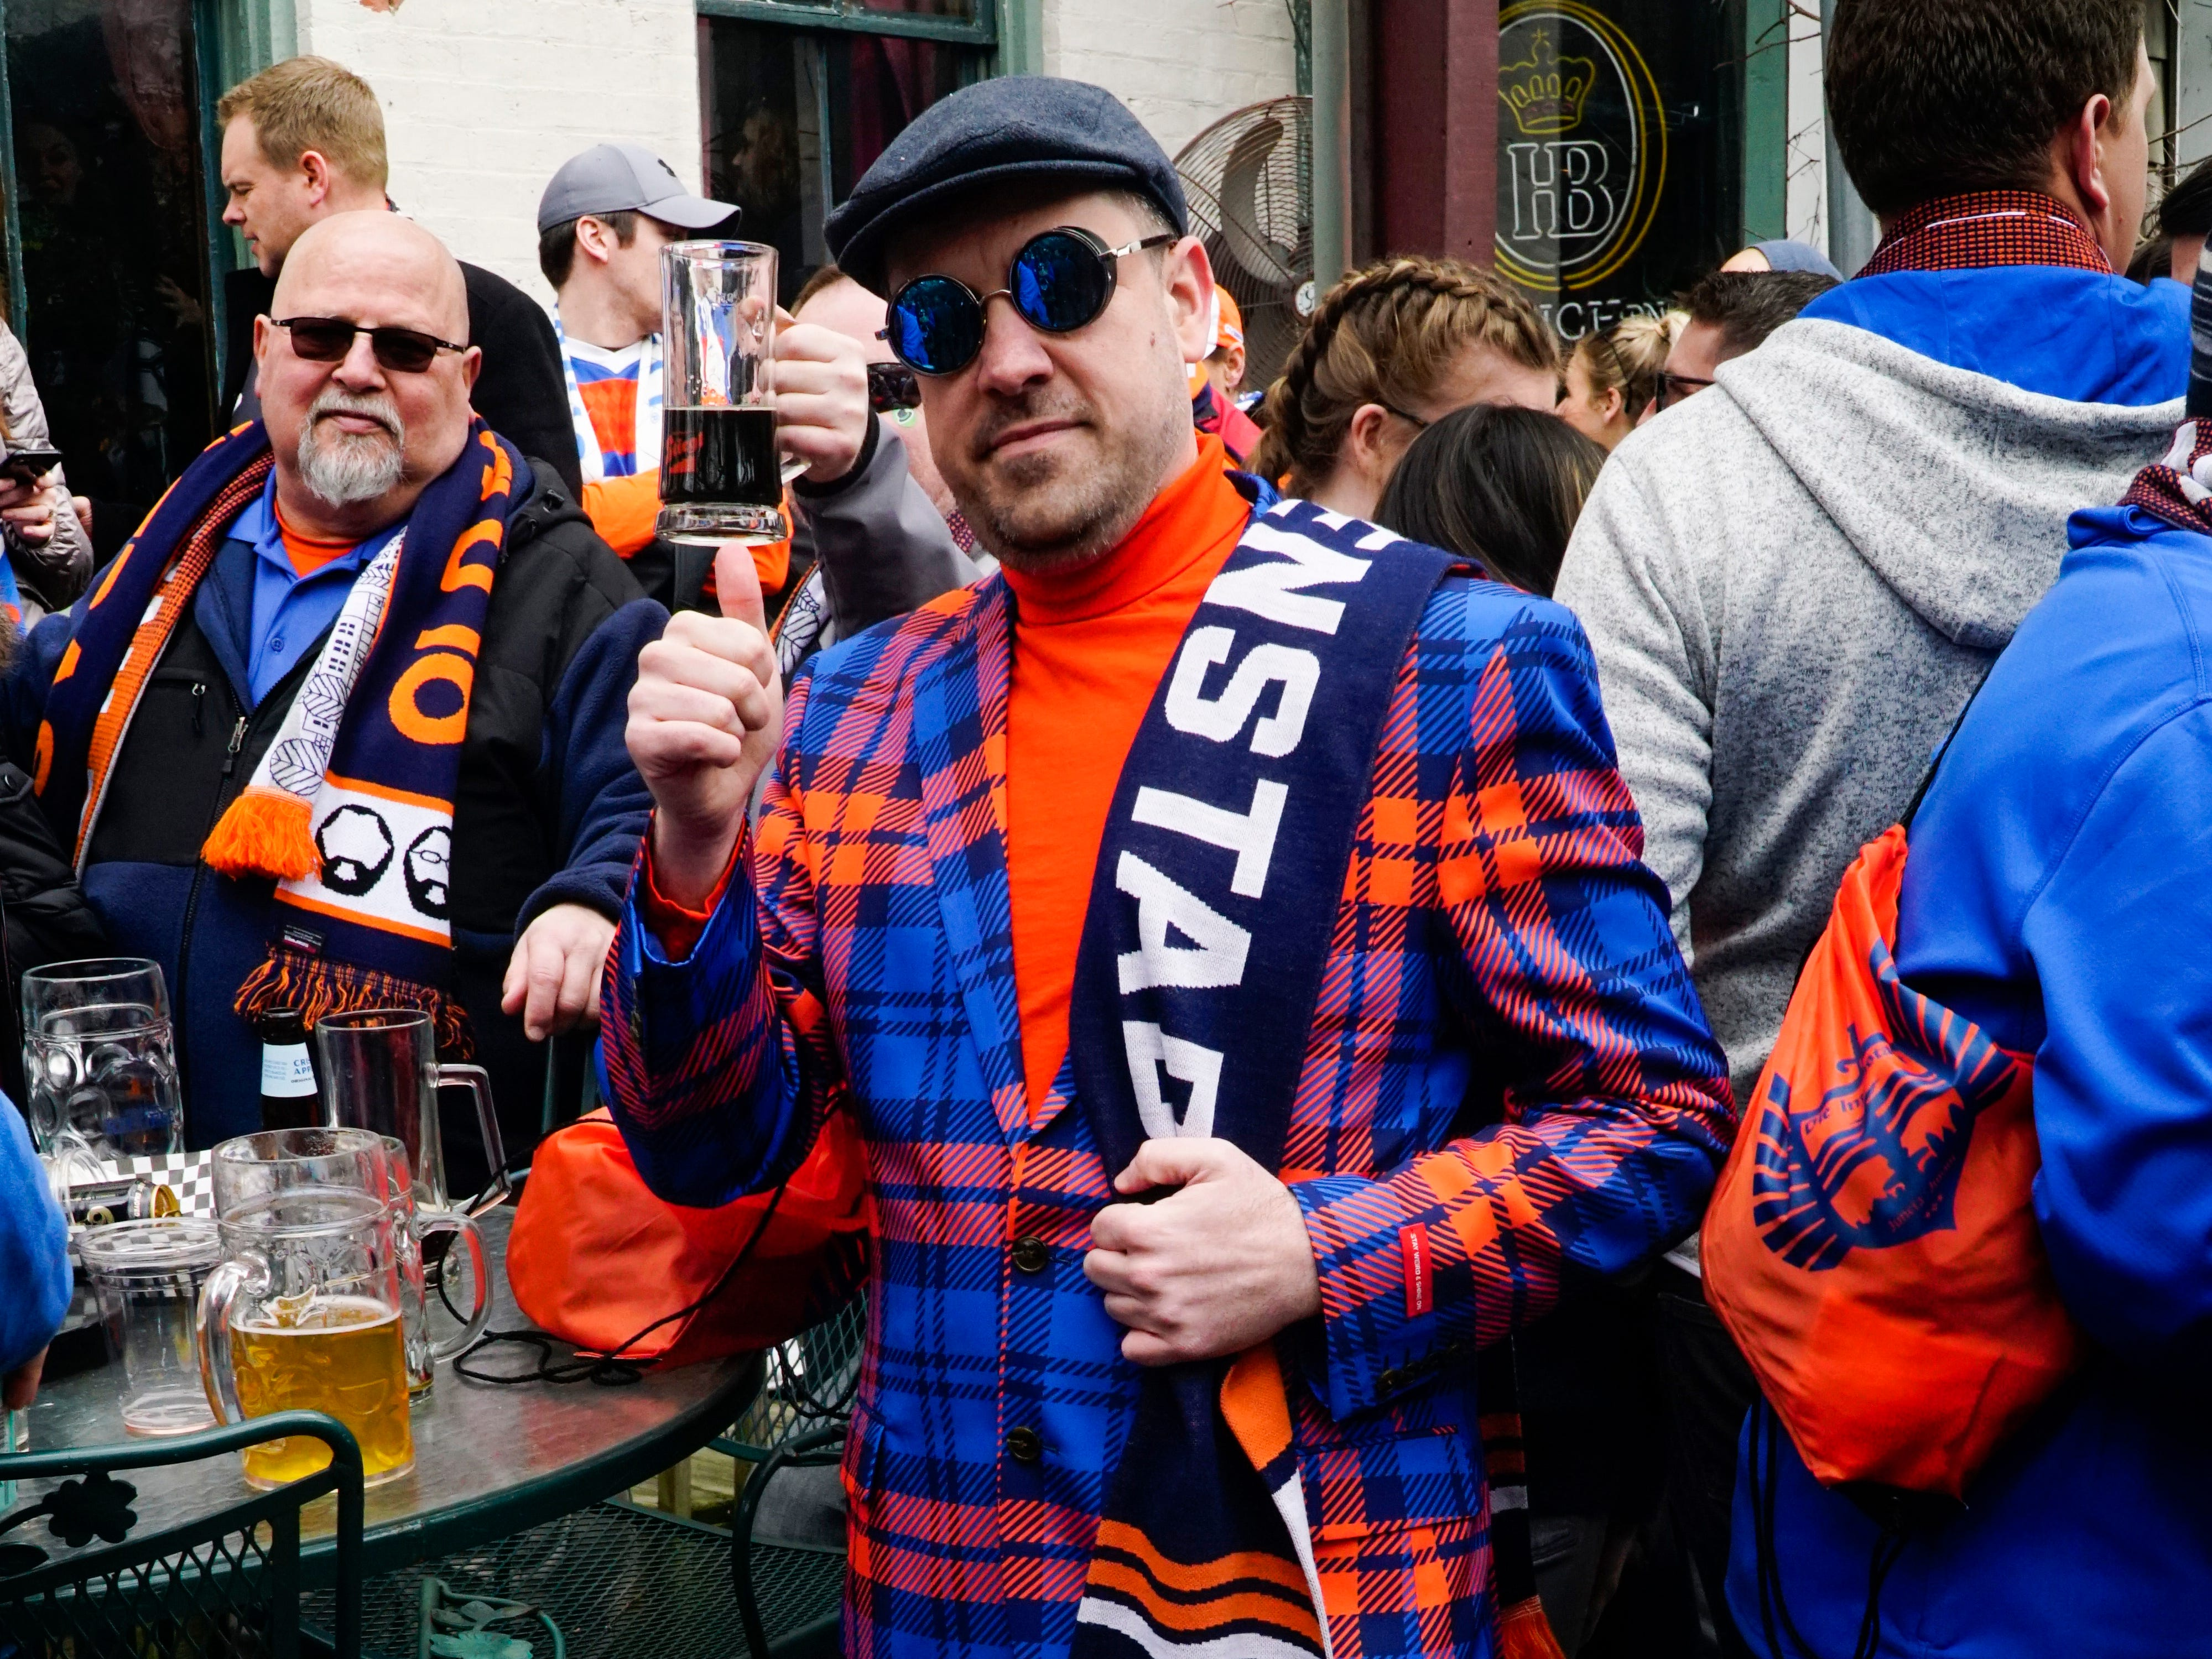 Geoff Tebbets buys a new FC Cincinnati themed suit at the start of every soccer season, March 17, 2019.